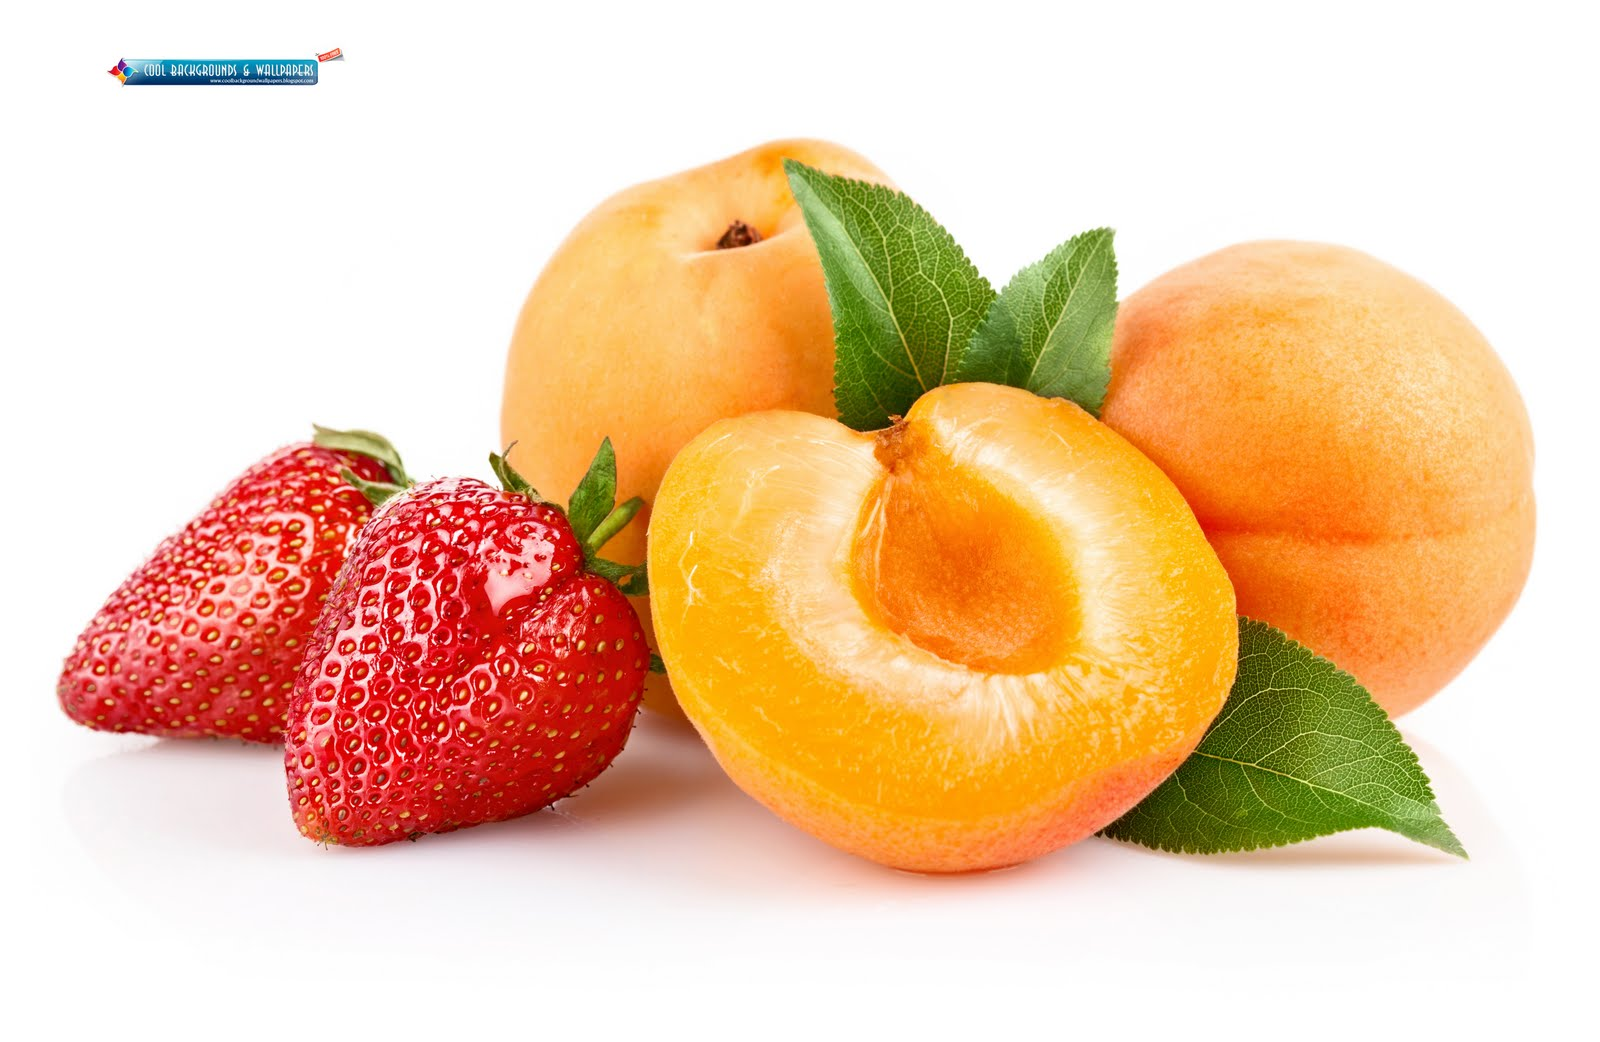 Fruits hd images - Cute Backgrounds And Wallpapers Fresh Fruits Hd Wallpapers